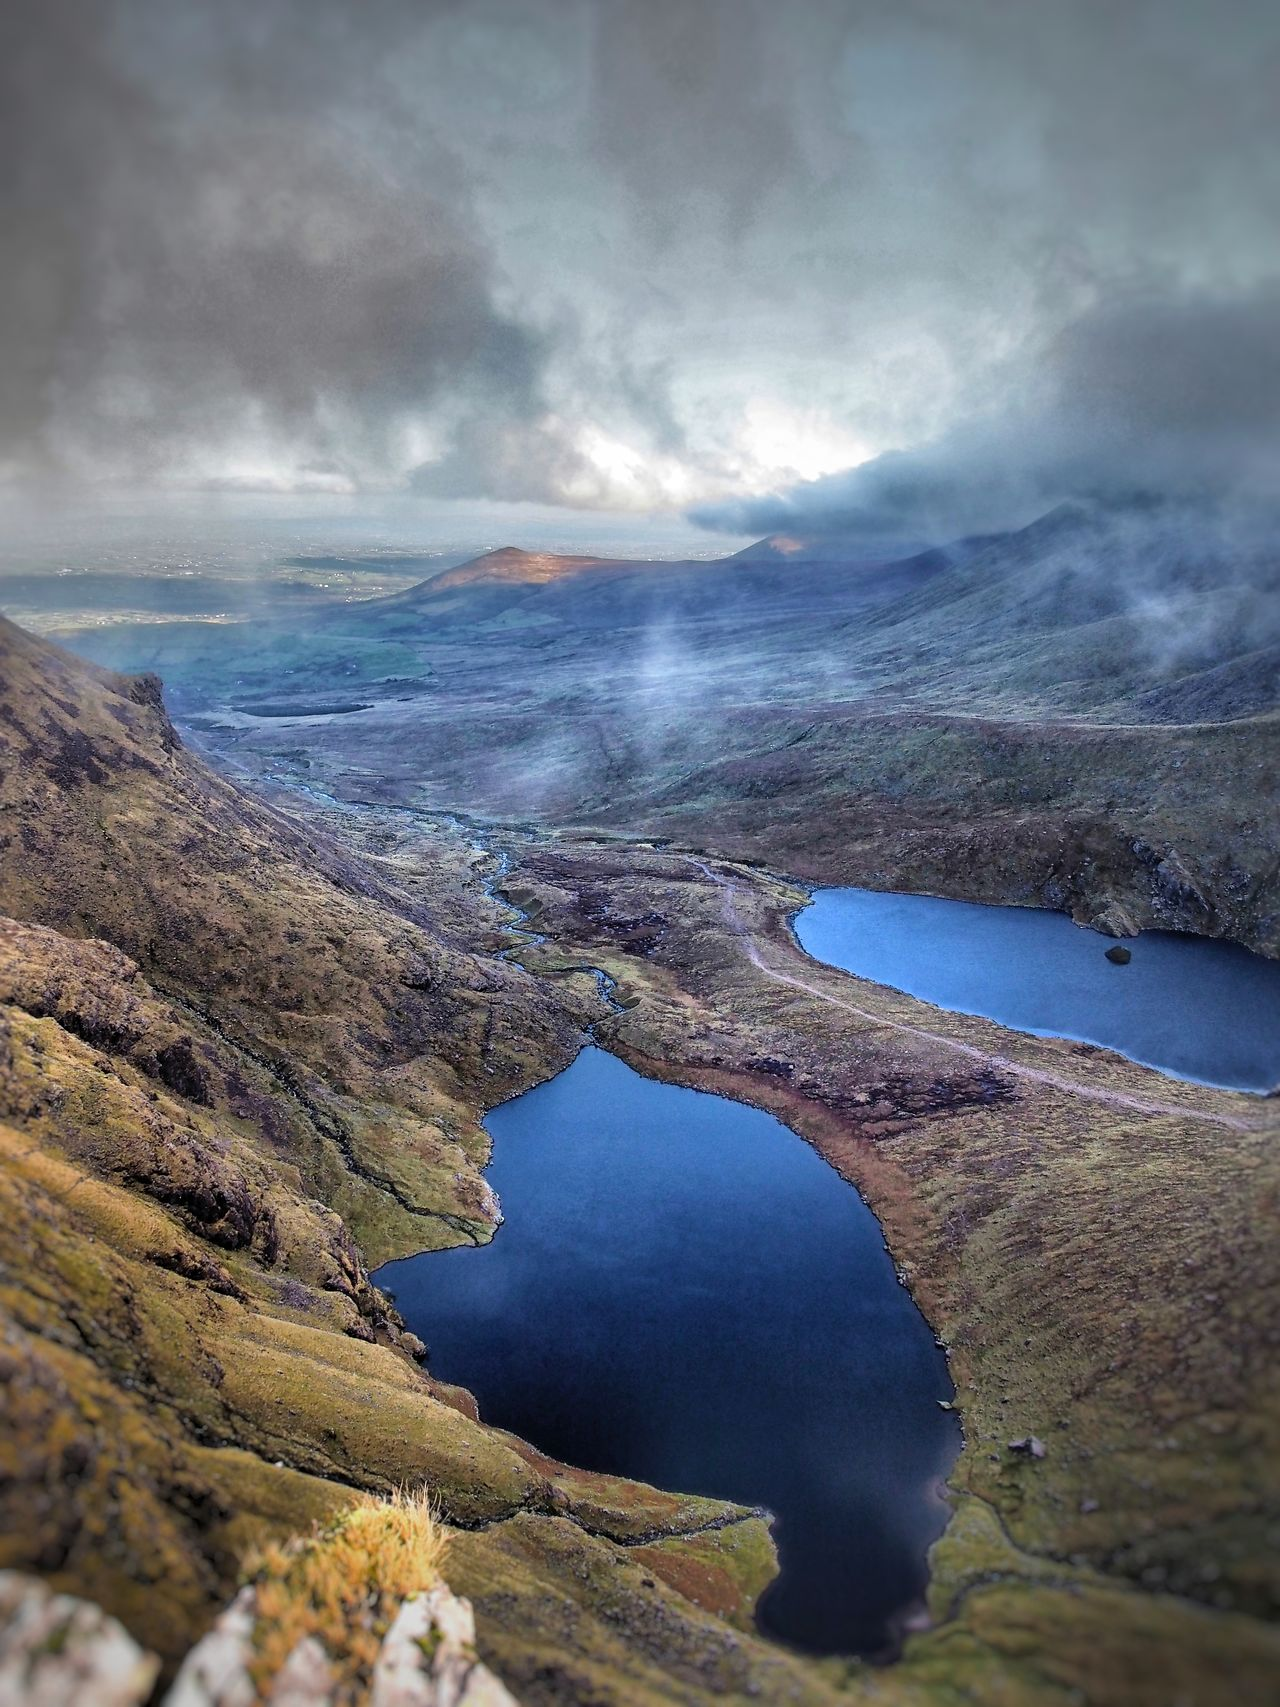 Hag's Glen Macgillycuddy's Reeks Ireland Landscape Nature No People Outdoors Beauty In Nature Cloud - Sky Glen Lough Gouragh Lough Callee Lough Mountain Range Hiking Photography Landscapes Lake Miles Away Flying High